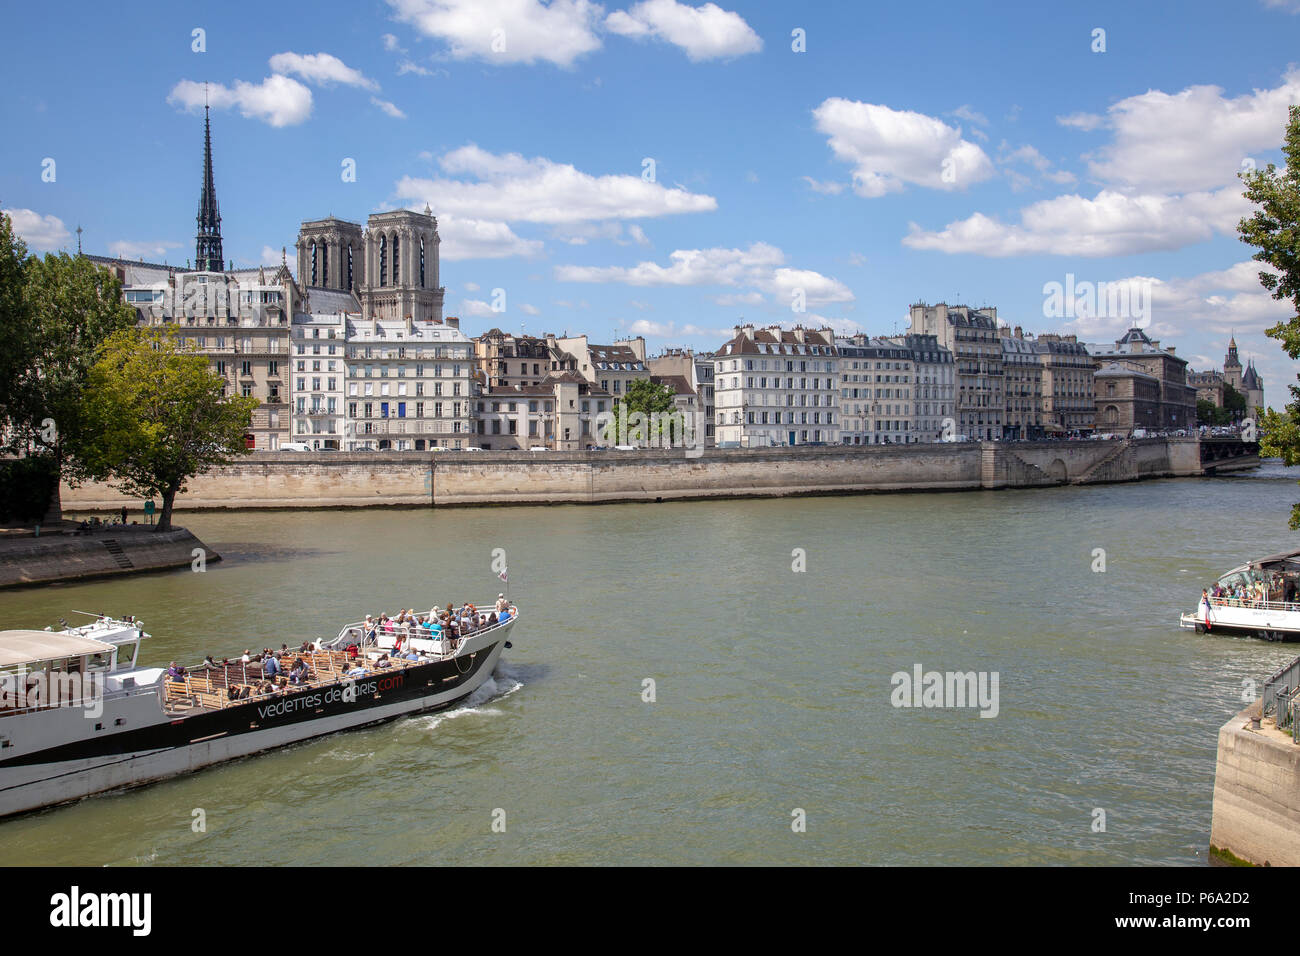 Views over River Seine and Paris from Pont Louis Philippe in Paris, France - Stock Image